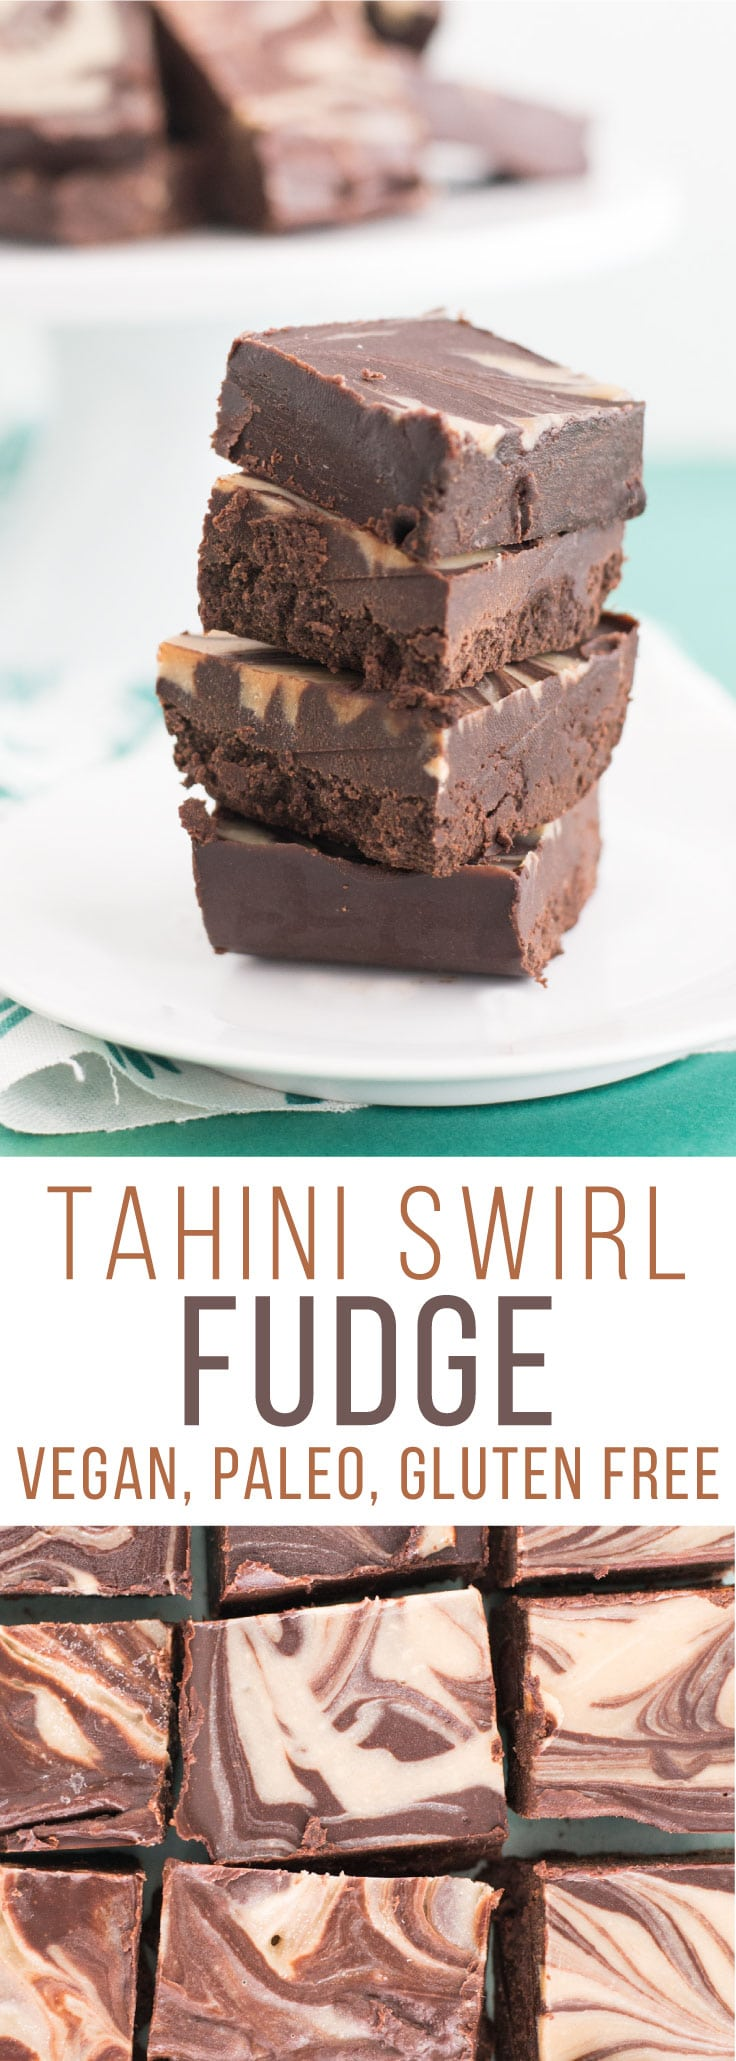 Tahini Swirl Fudge -- This fudge is so rich and decadent sans all the butter, dairy, and refined sugar. Tahini, coconut oil, maple syrup, and chocolate create this vegan fudge masterpiece.  | mindfulavocado